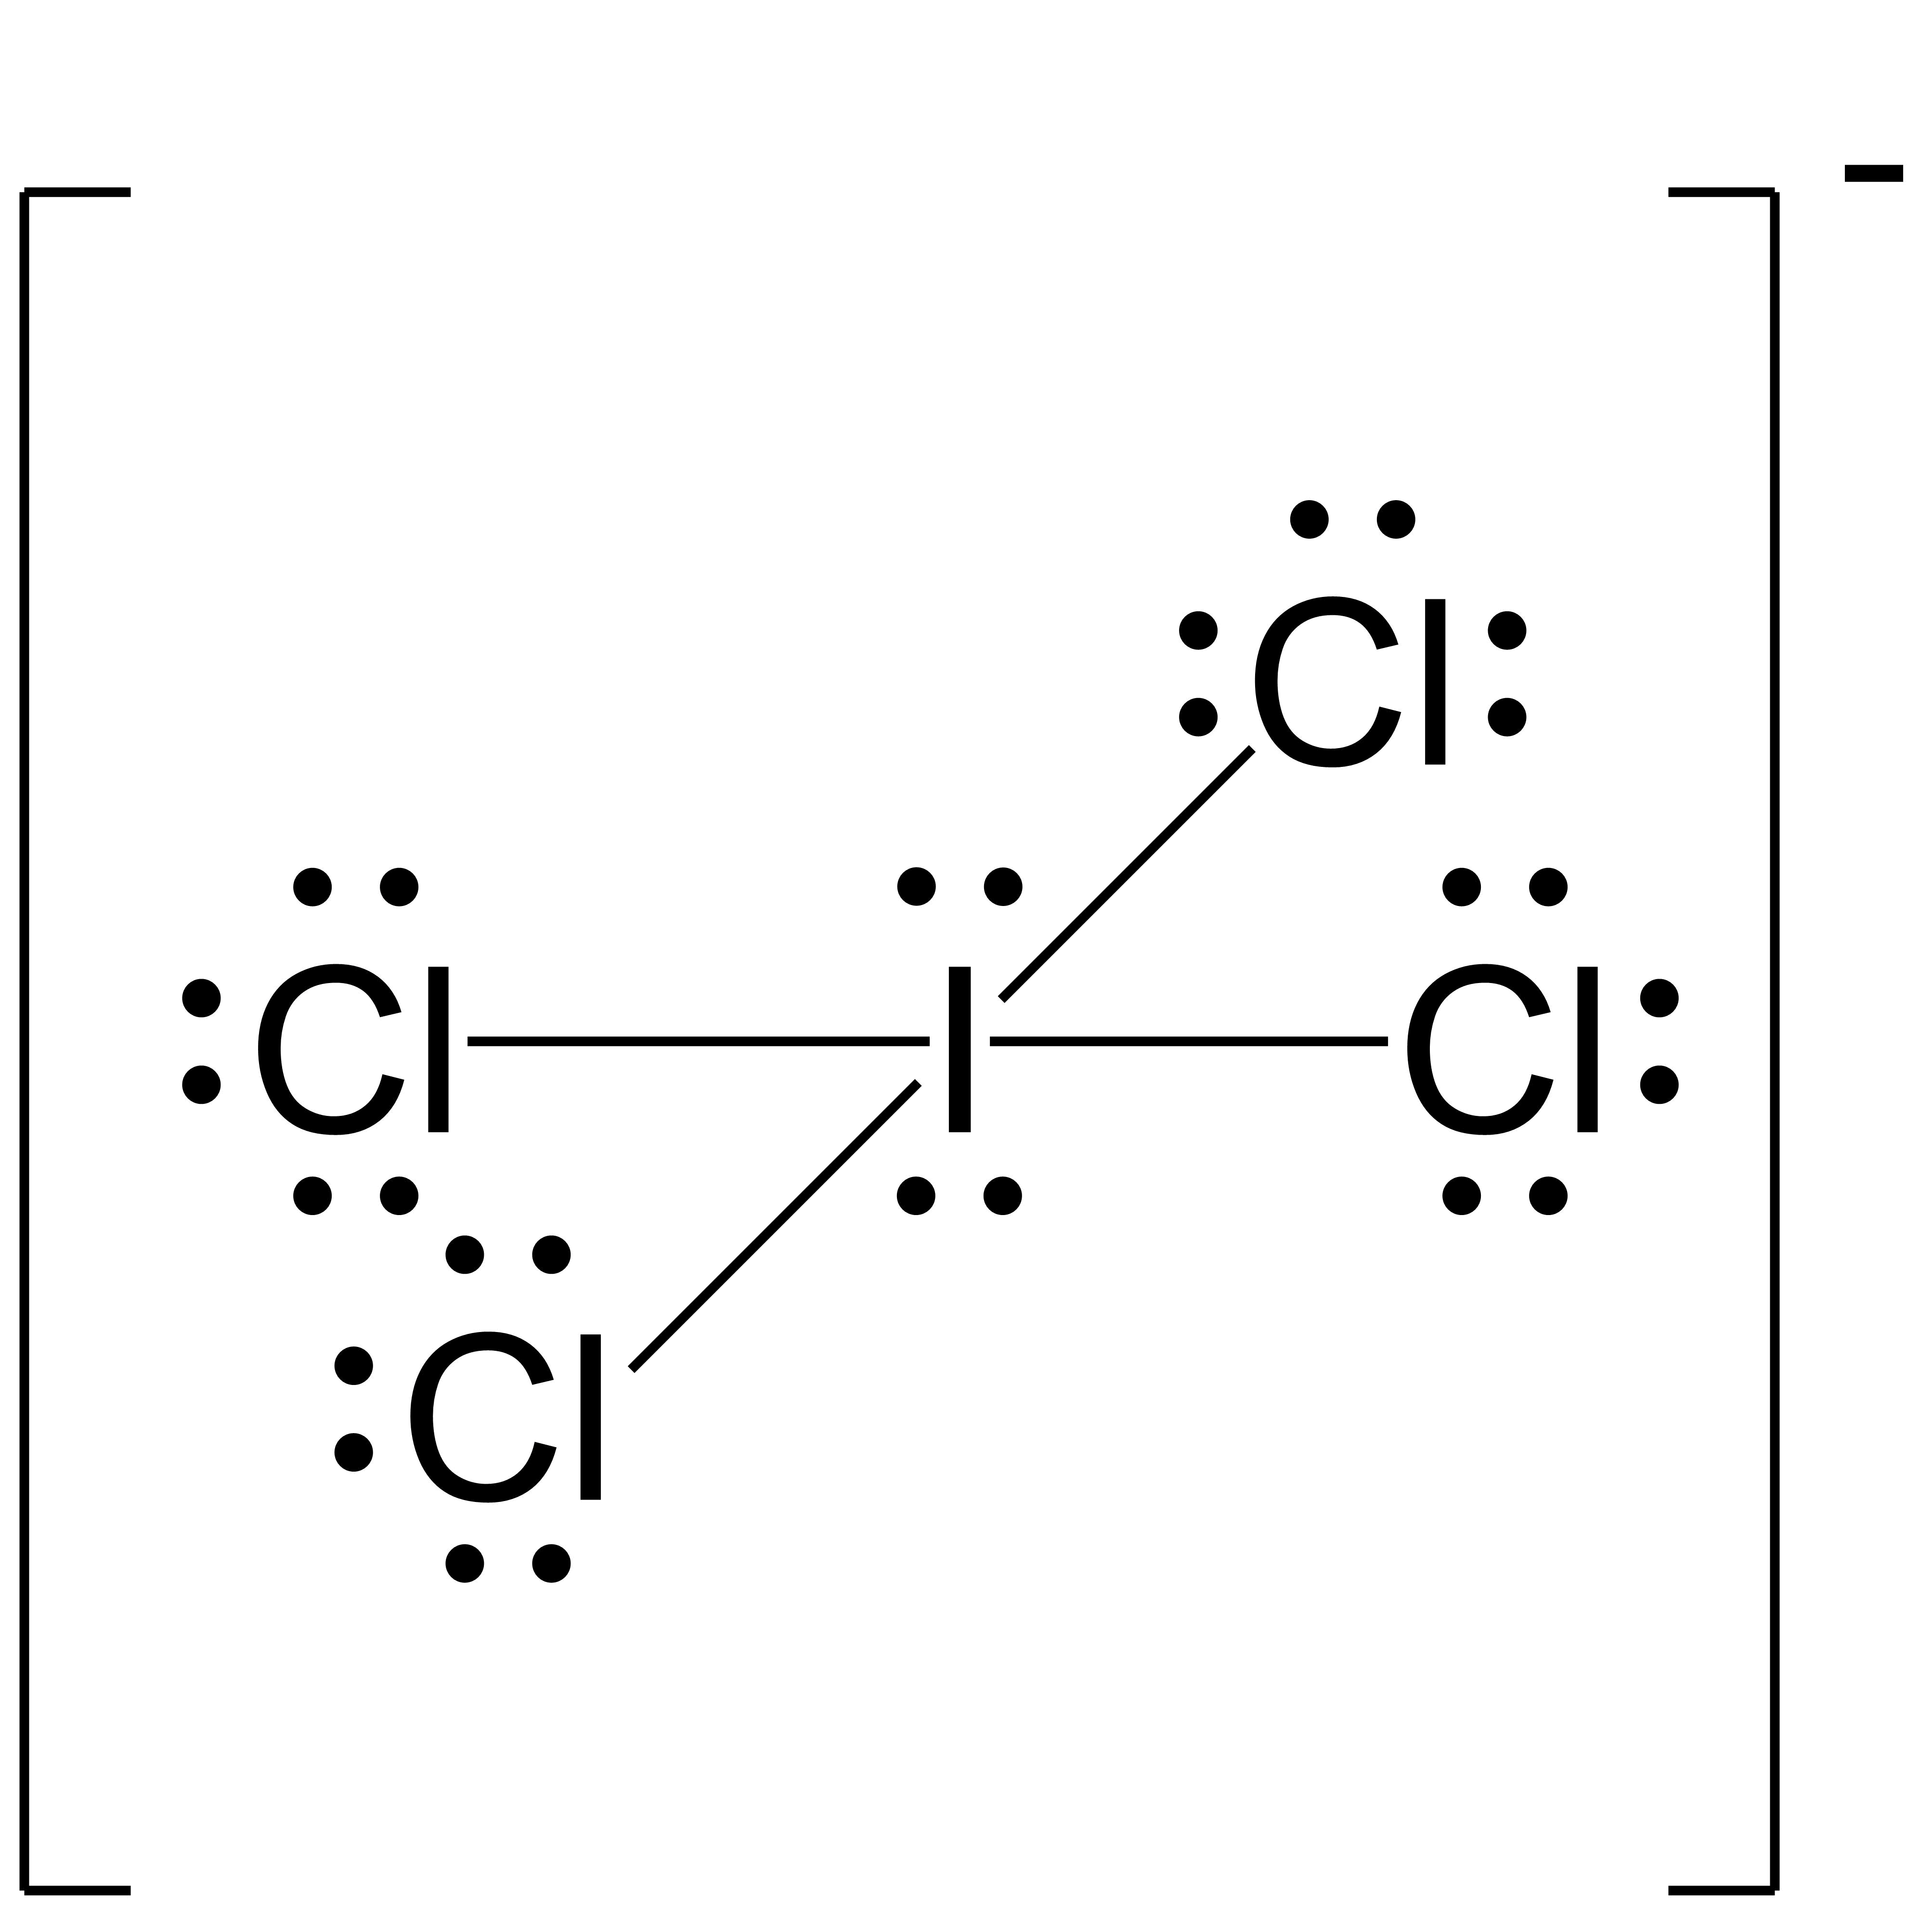 Resonance Structure for ICl4. The central iodine atom is singly bonded to four chlorine atoms. The central iodine atom also has two lone pairs.